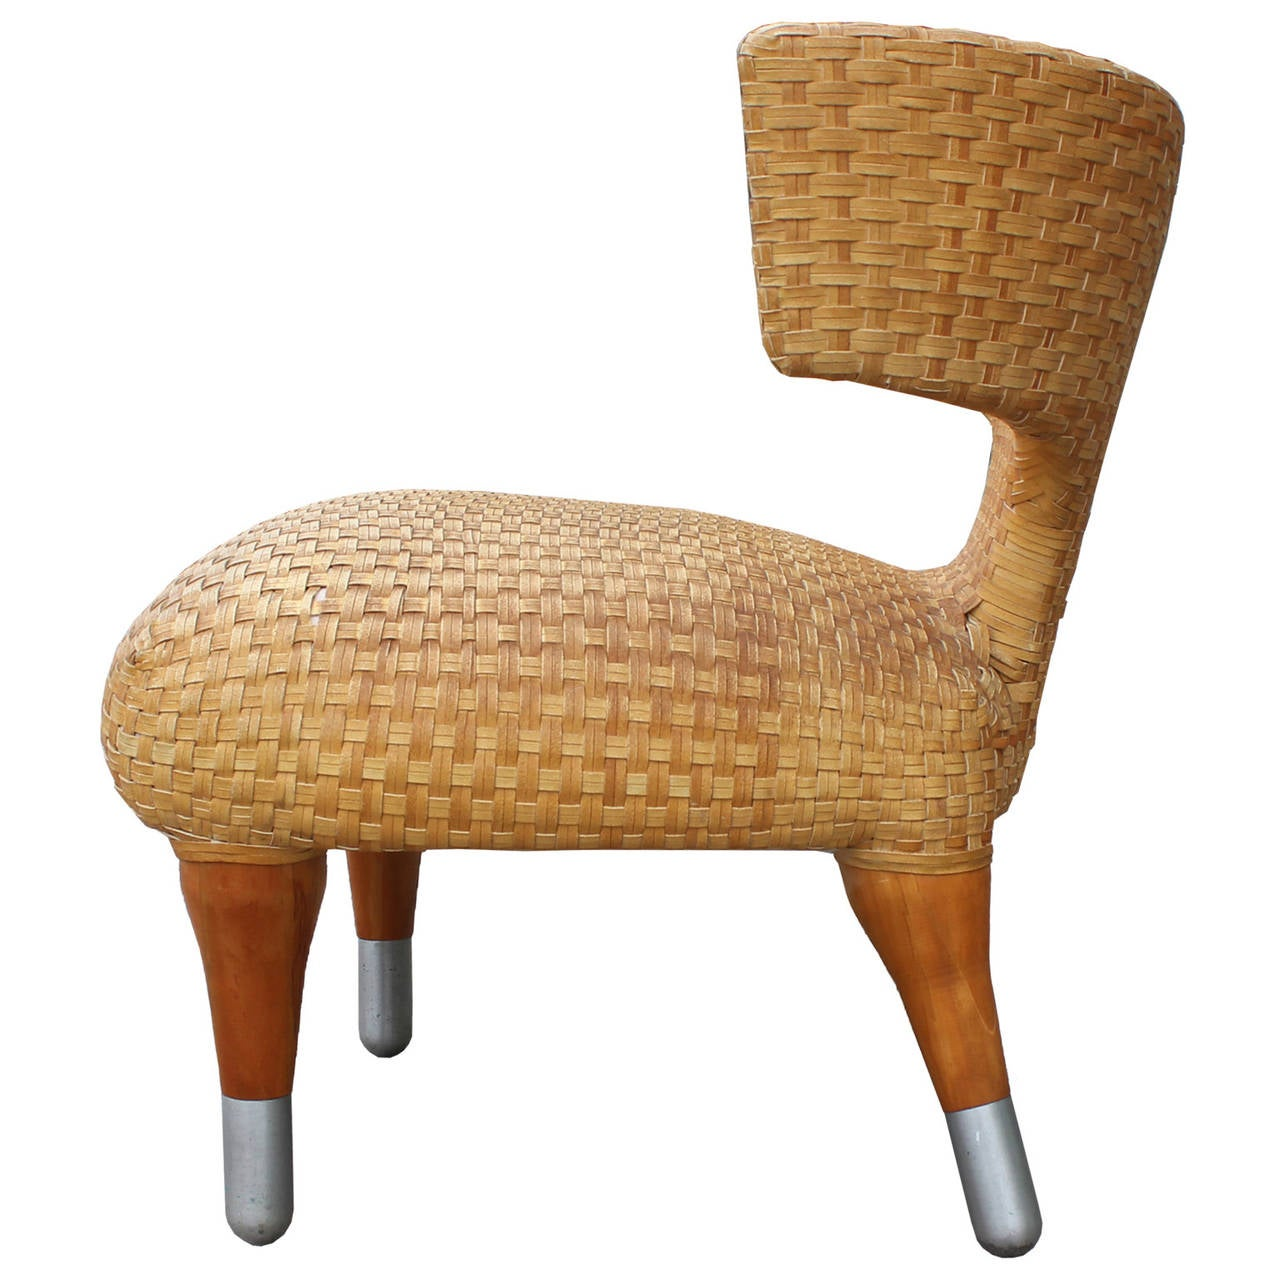 Leather Woven Chair Klismos Side Chair In Woven Leather At 1stdibs